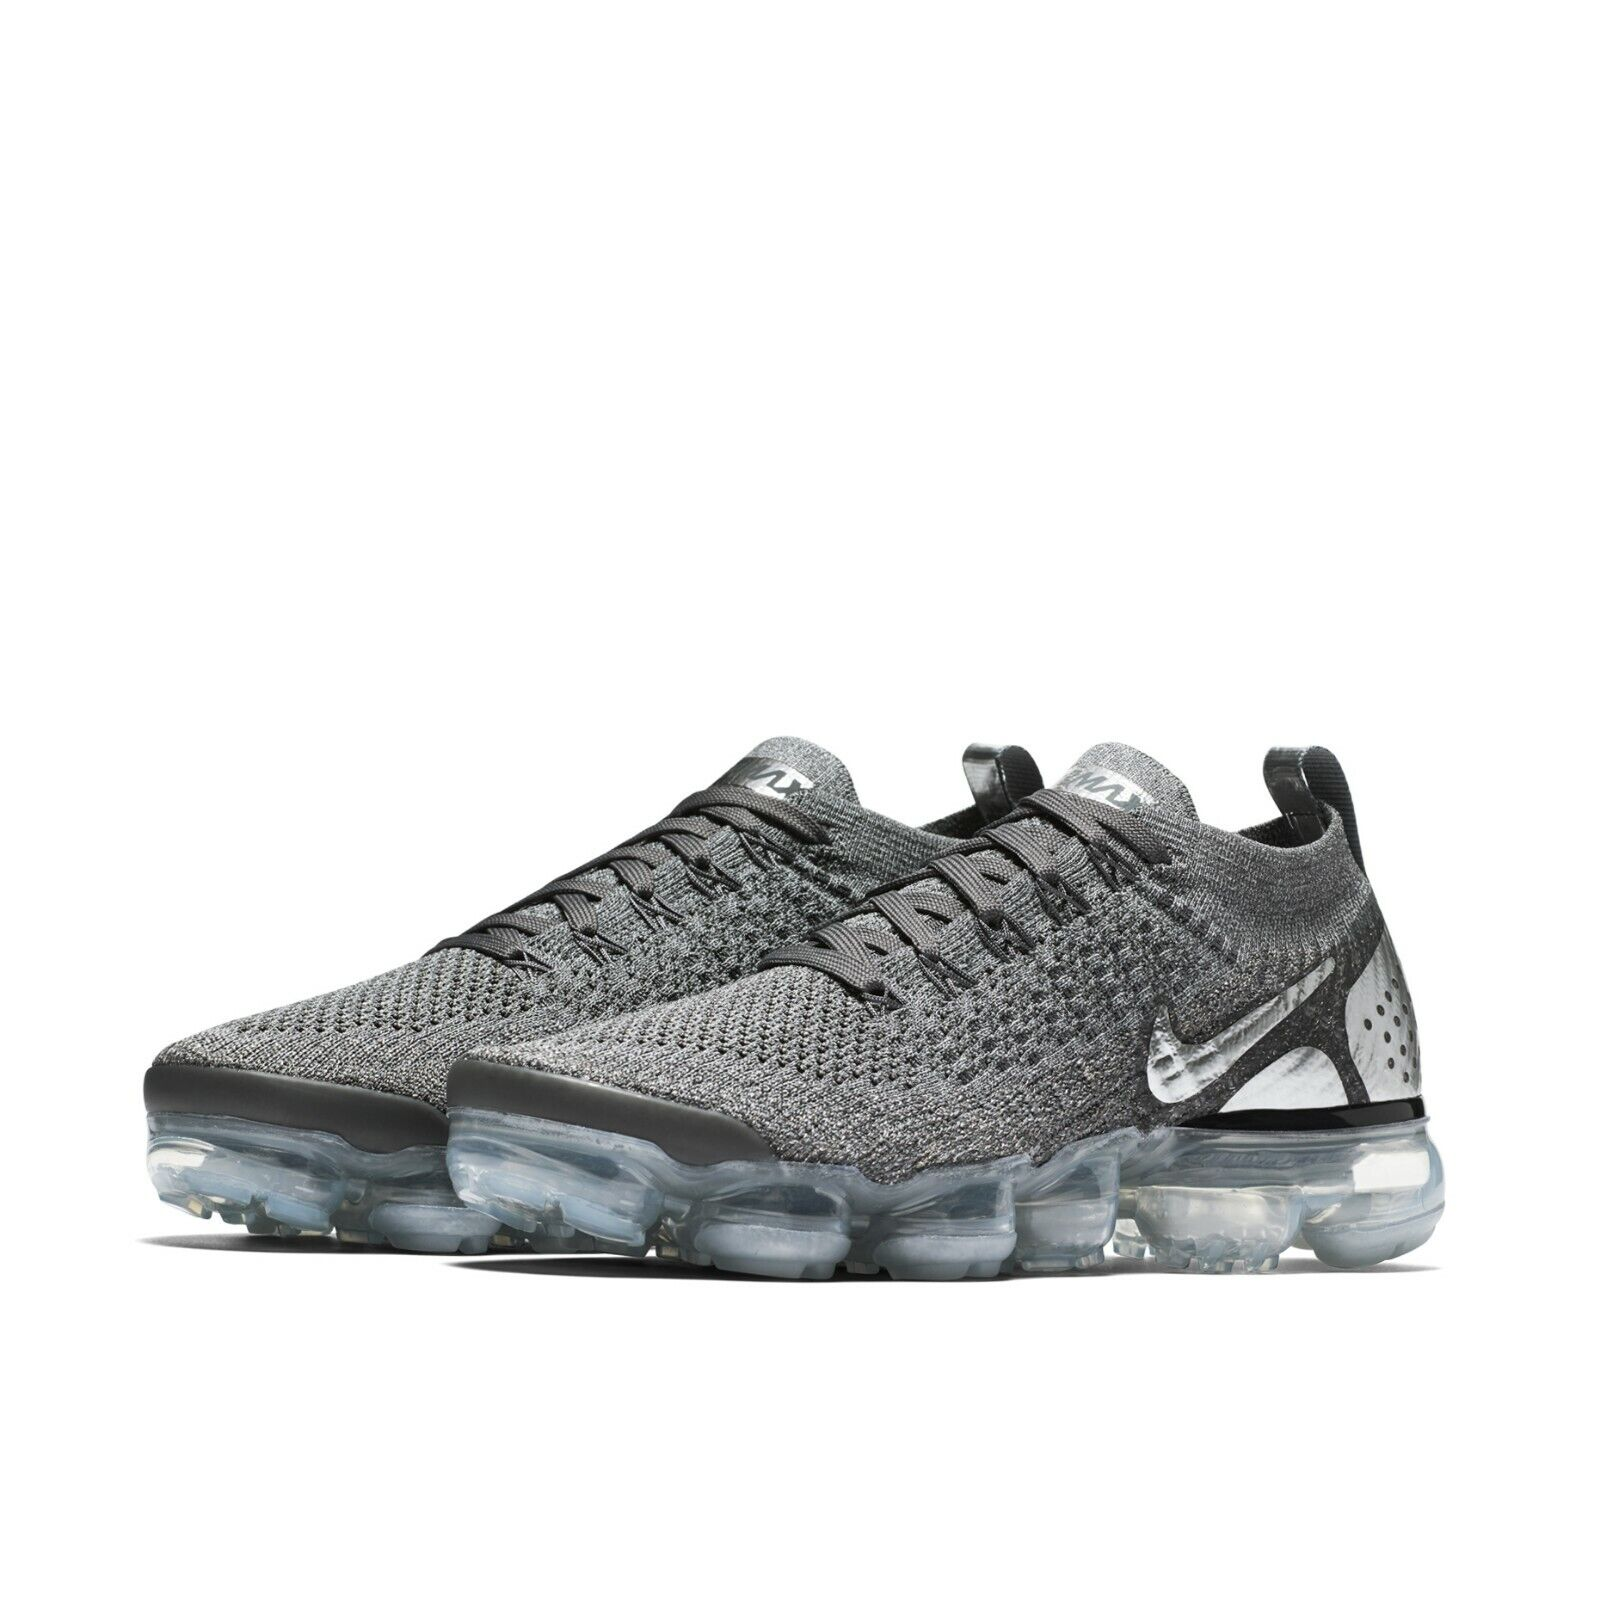 finest selection 7125e 7e6e2 Details about Nike Womens Wmns Air Vapormax Flyknit 2 Dark Grey Chrome  Running Shoe 942843-013